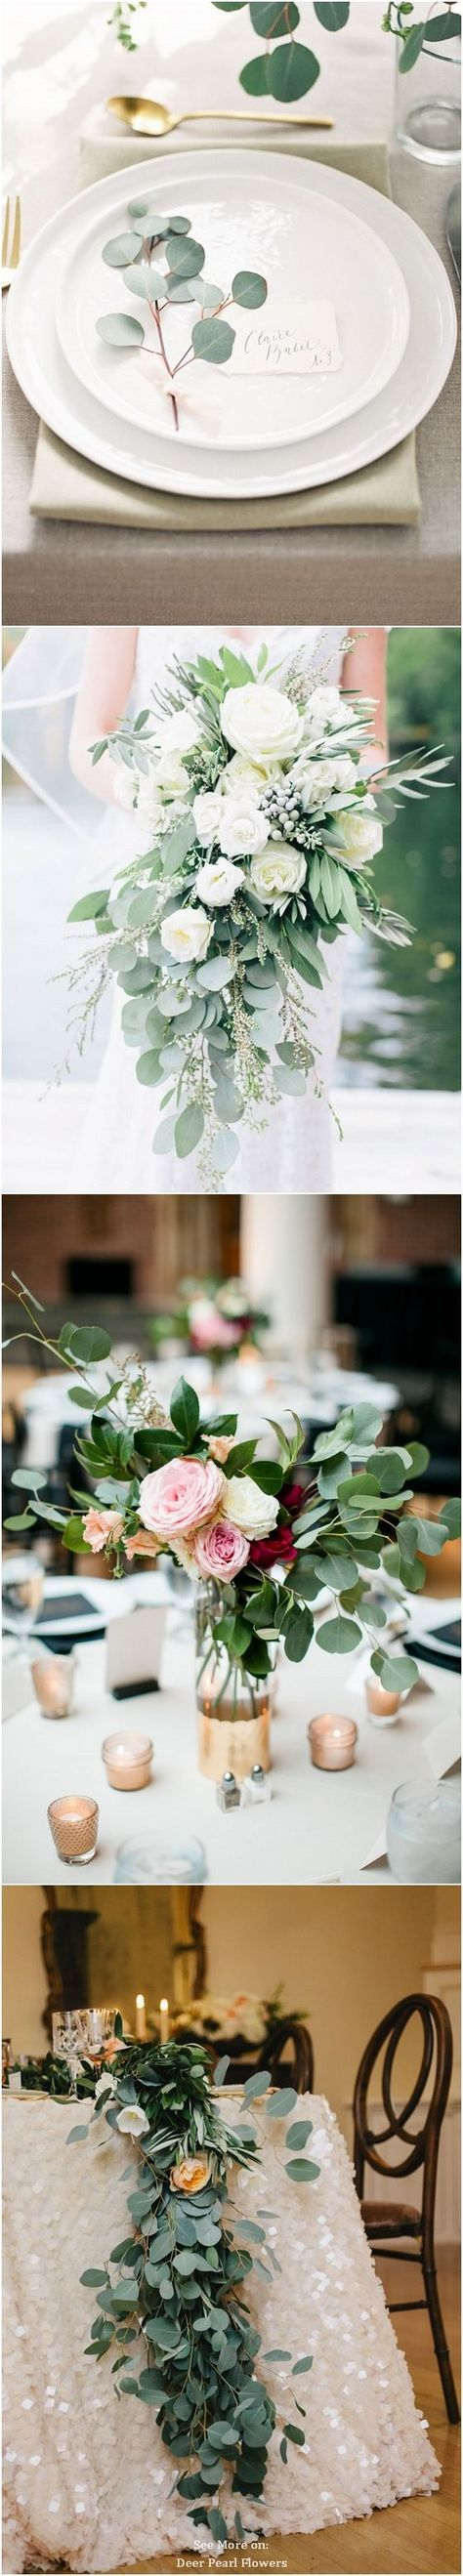 Wedding theme ideas by color   Greenery Eucalyptus Wedding Decor Ideas  Green weddings